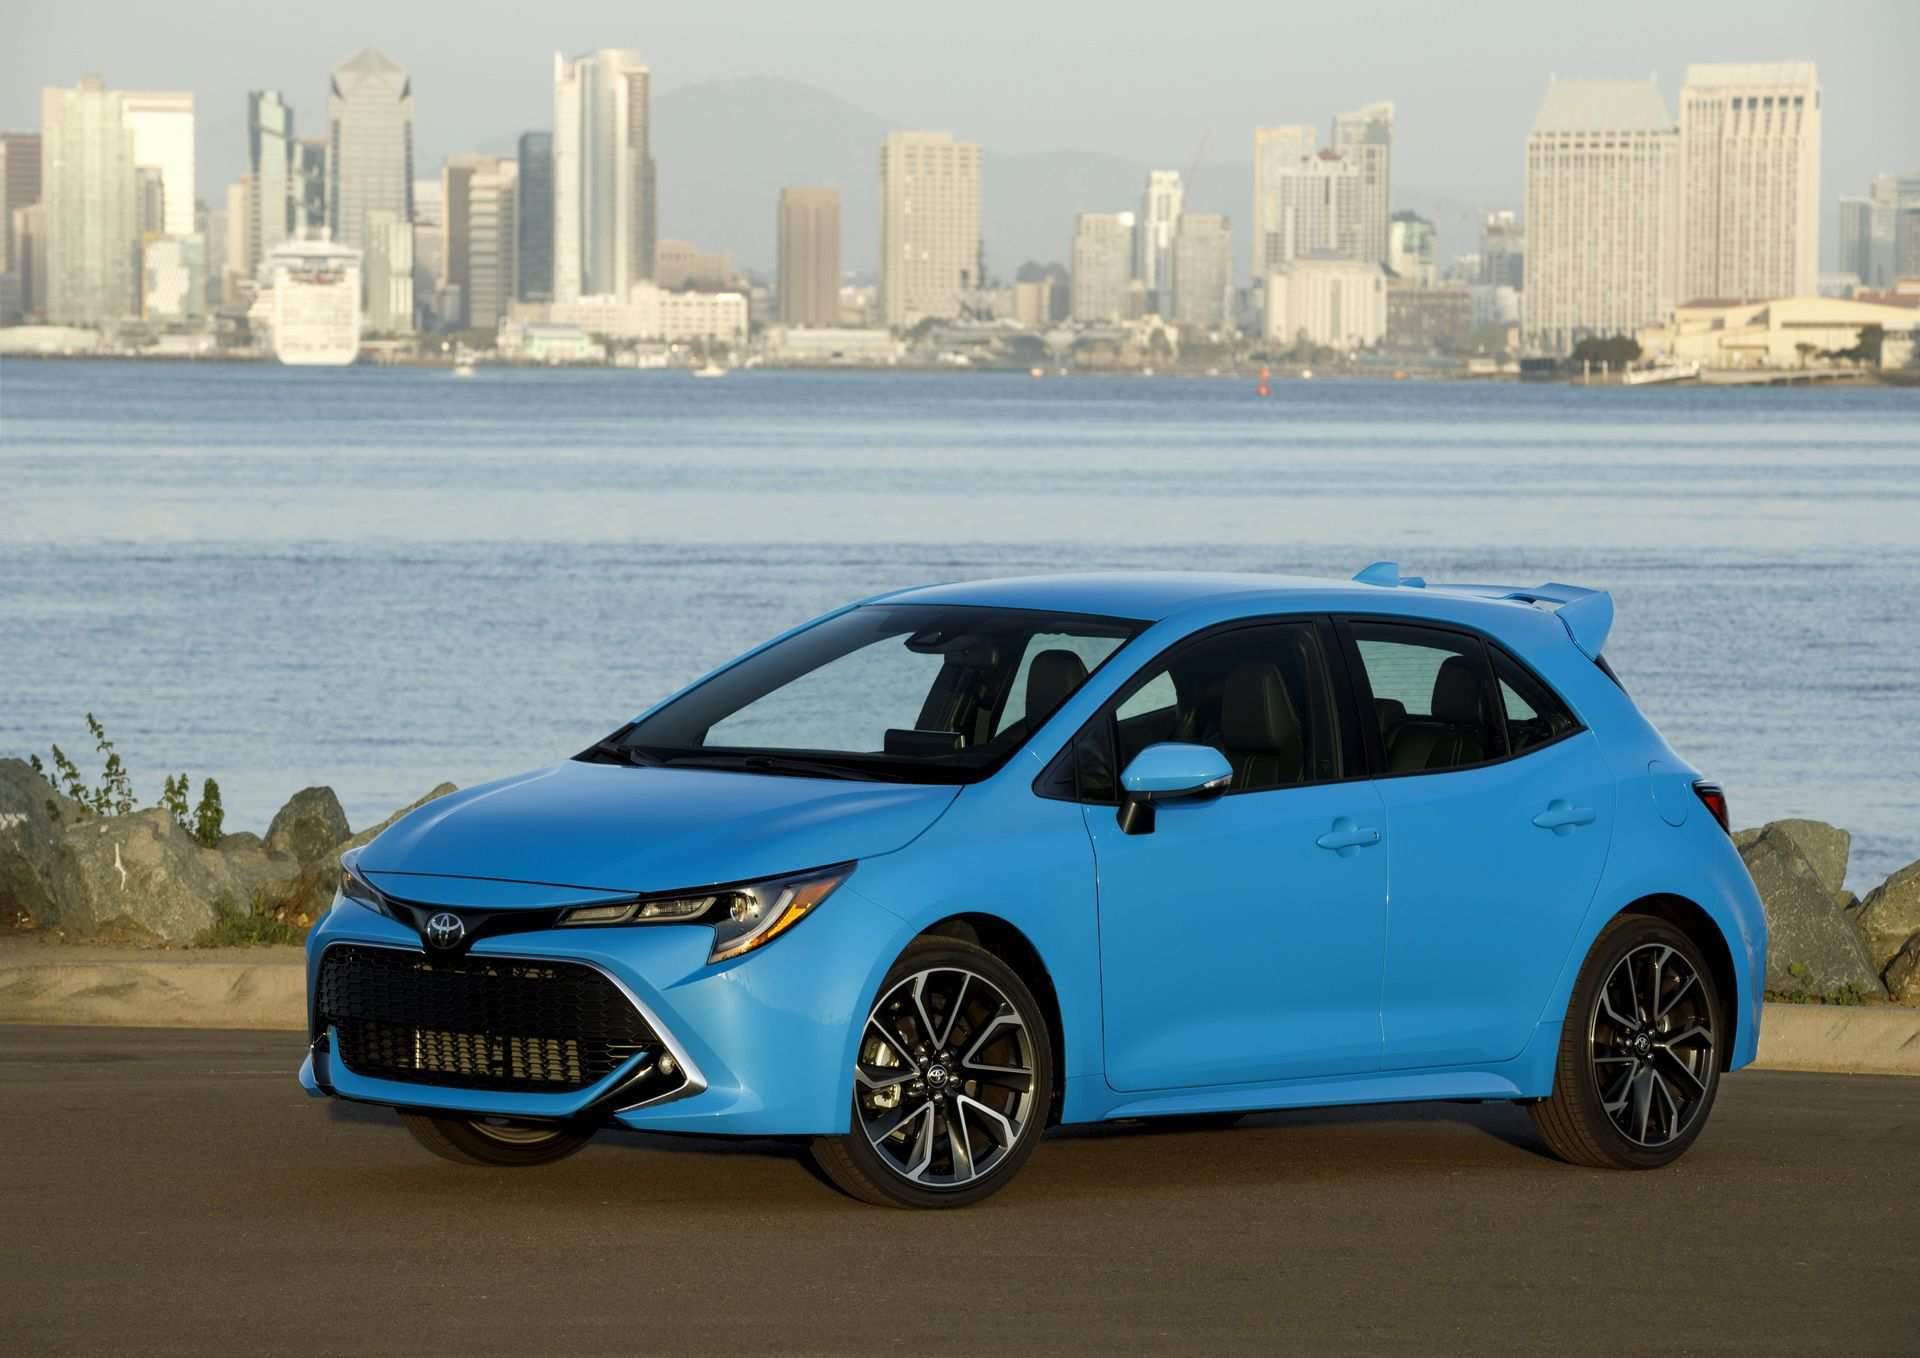 95 All New 2020 Toyota Corolla Hatchback Price by 2020 Toyota Corolla Hatchback